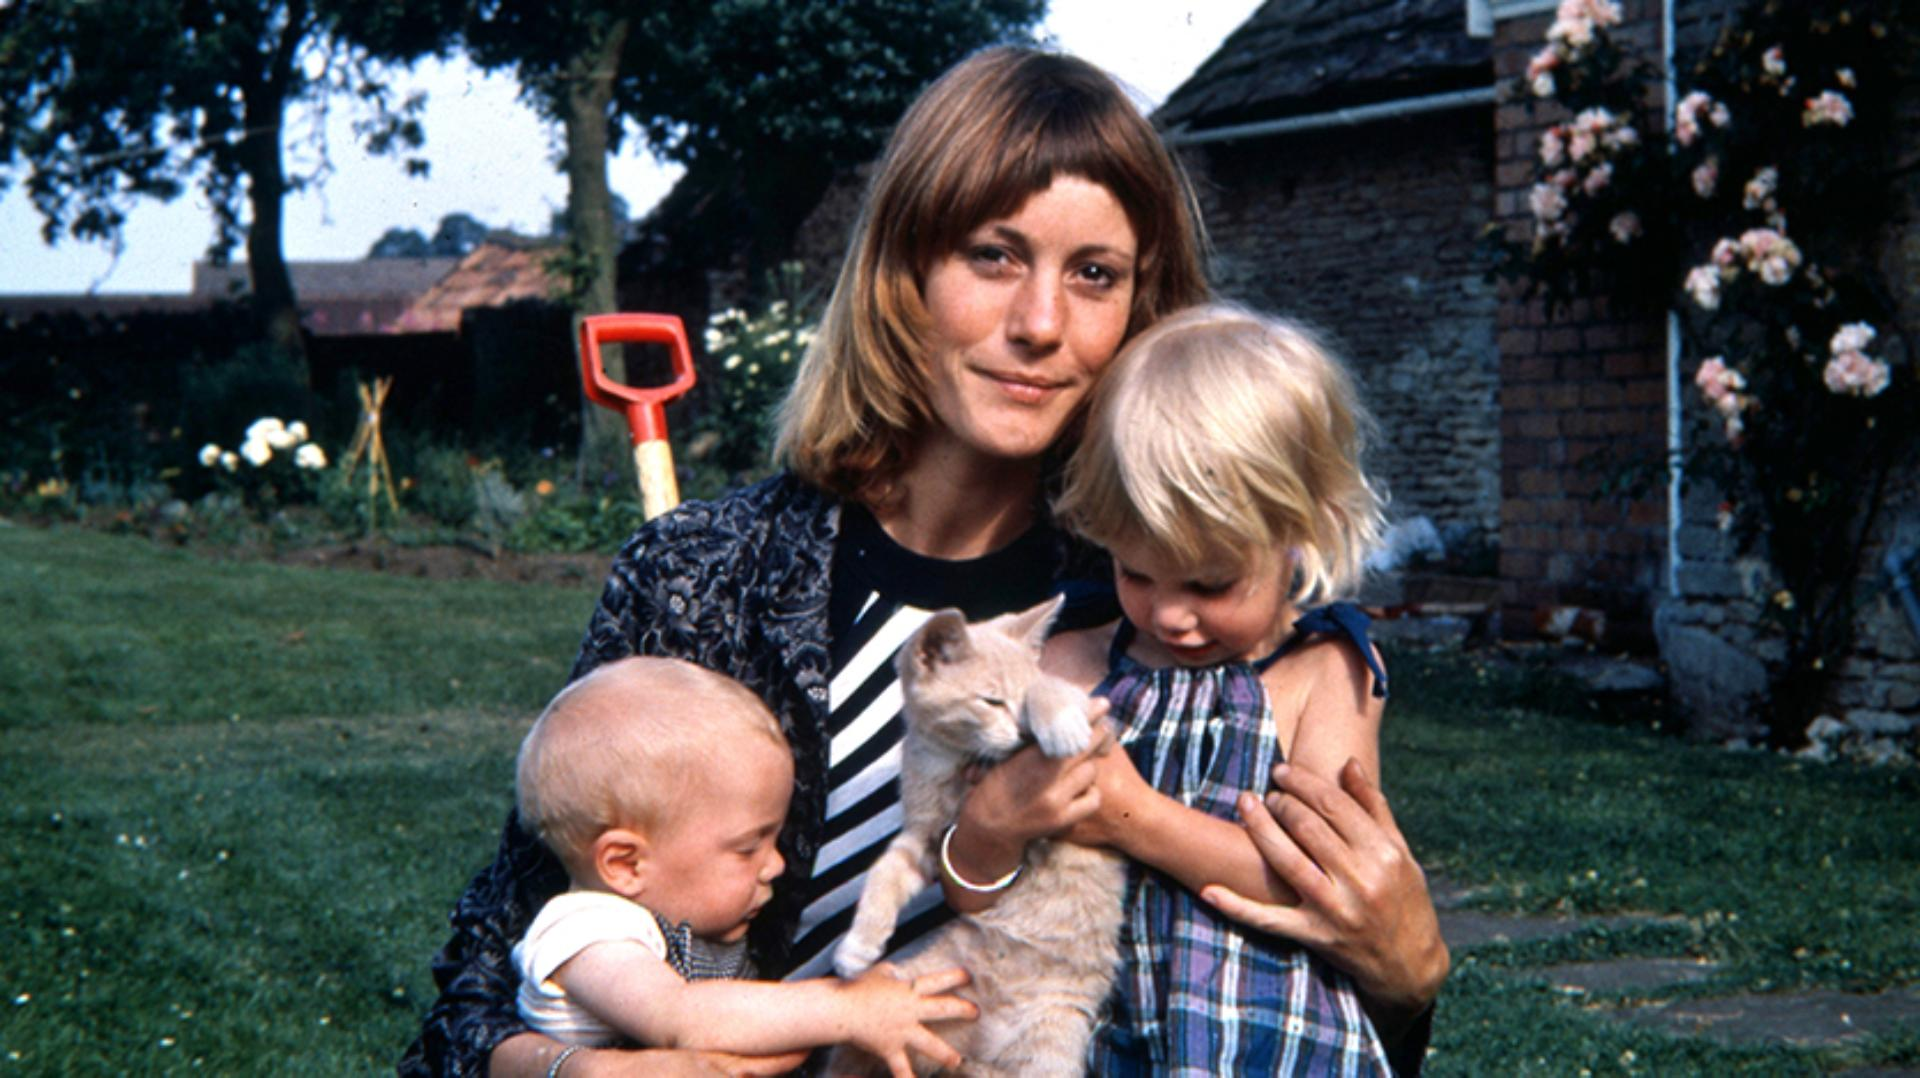 Deirdre Dyson holding toddler Emily, a young baby Jake, and a pet cat